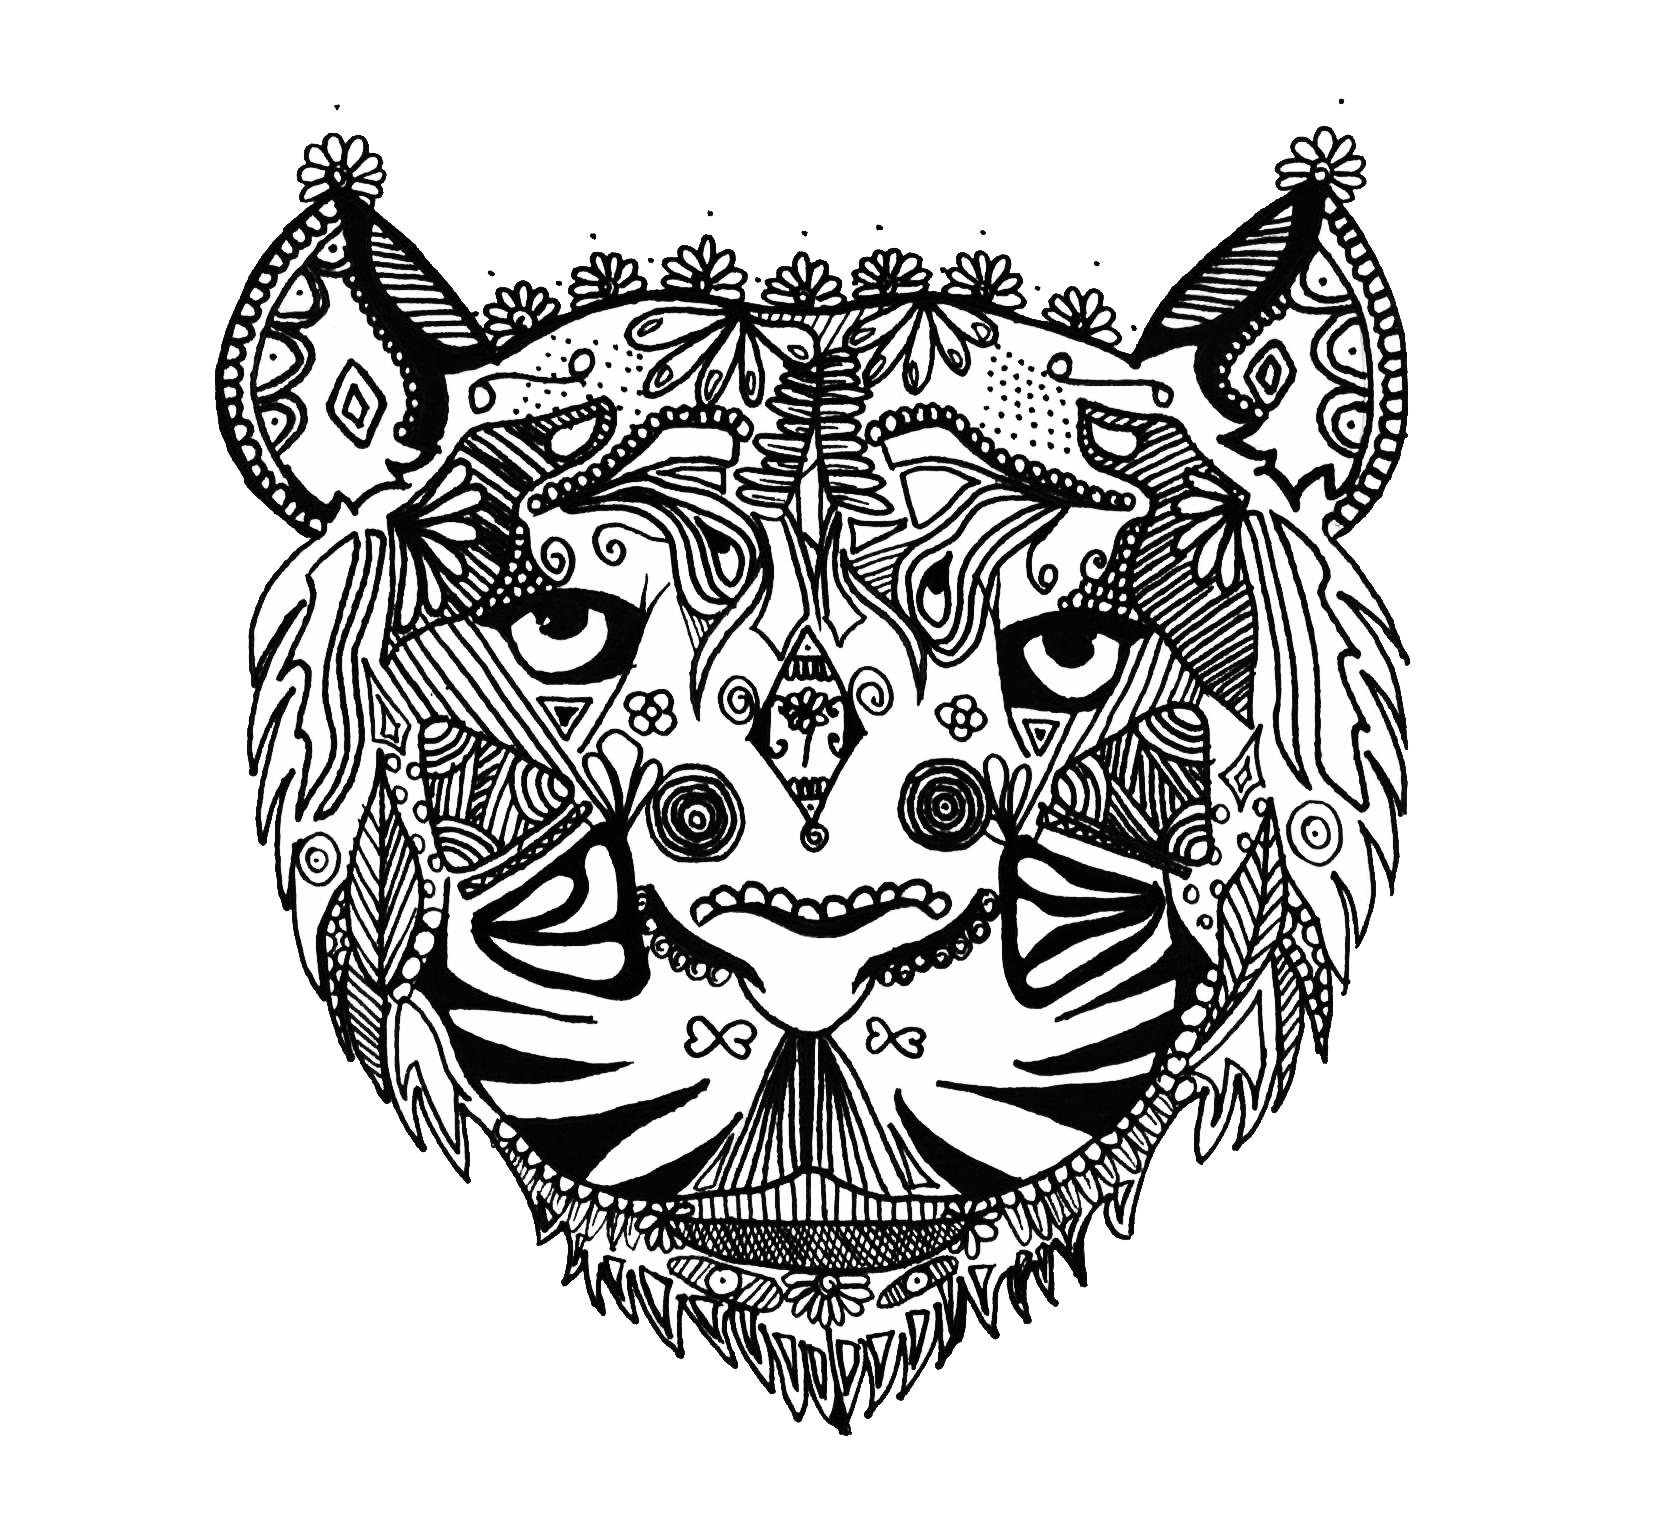 tiger mandala coloring pages 28 collection of mandala tiger drawing tiger drawing coloring mandala pages tiger